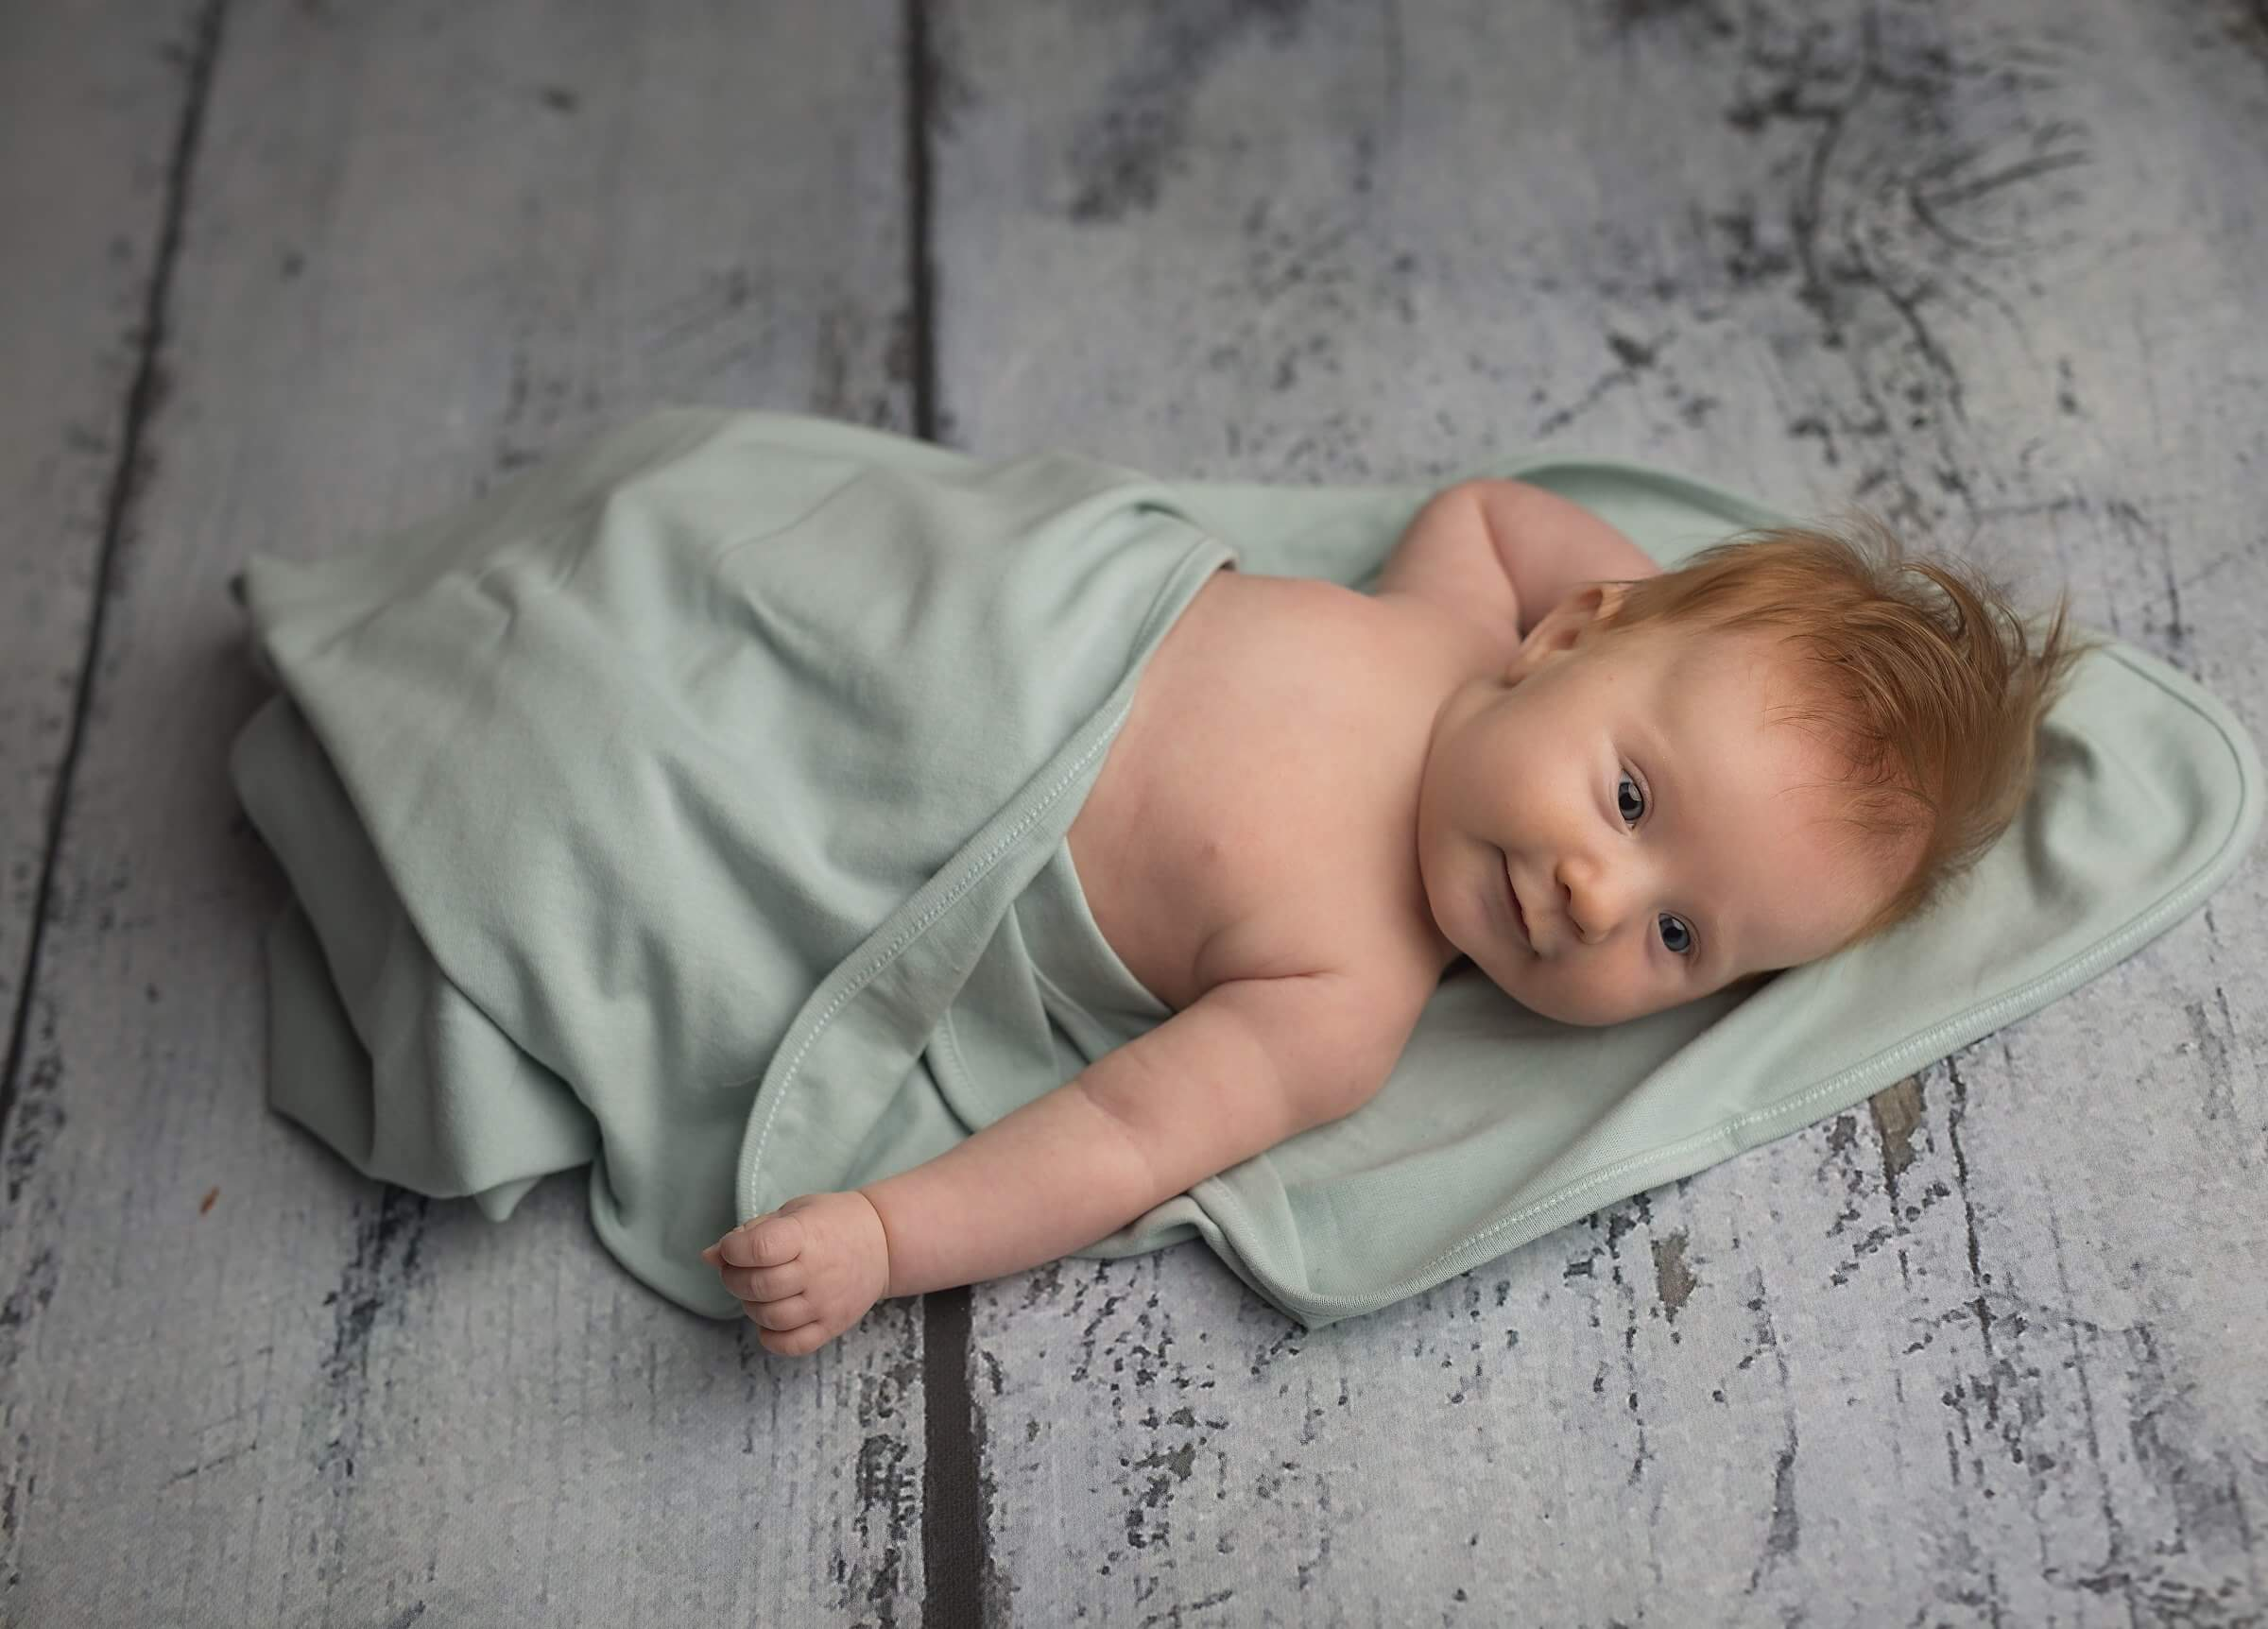 What should a bamboo swaddle be like? Why is wrapping a baby so important?